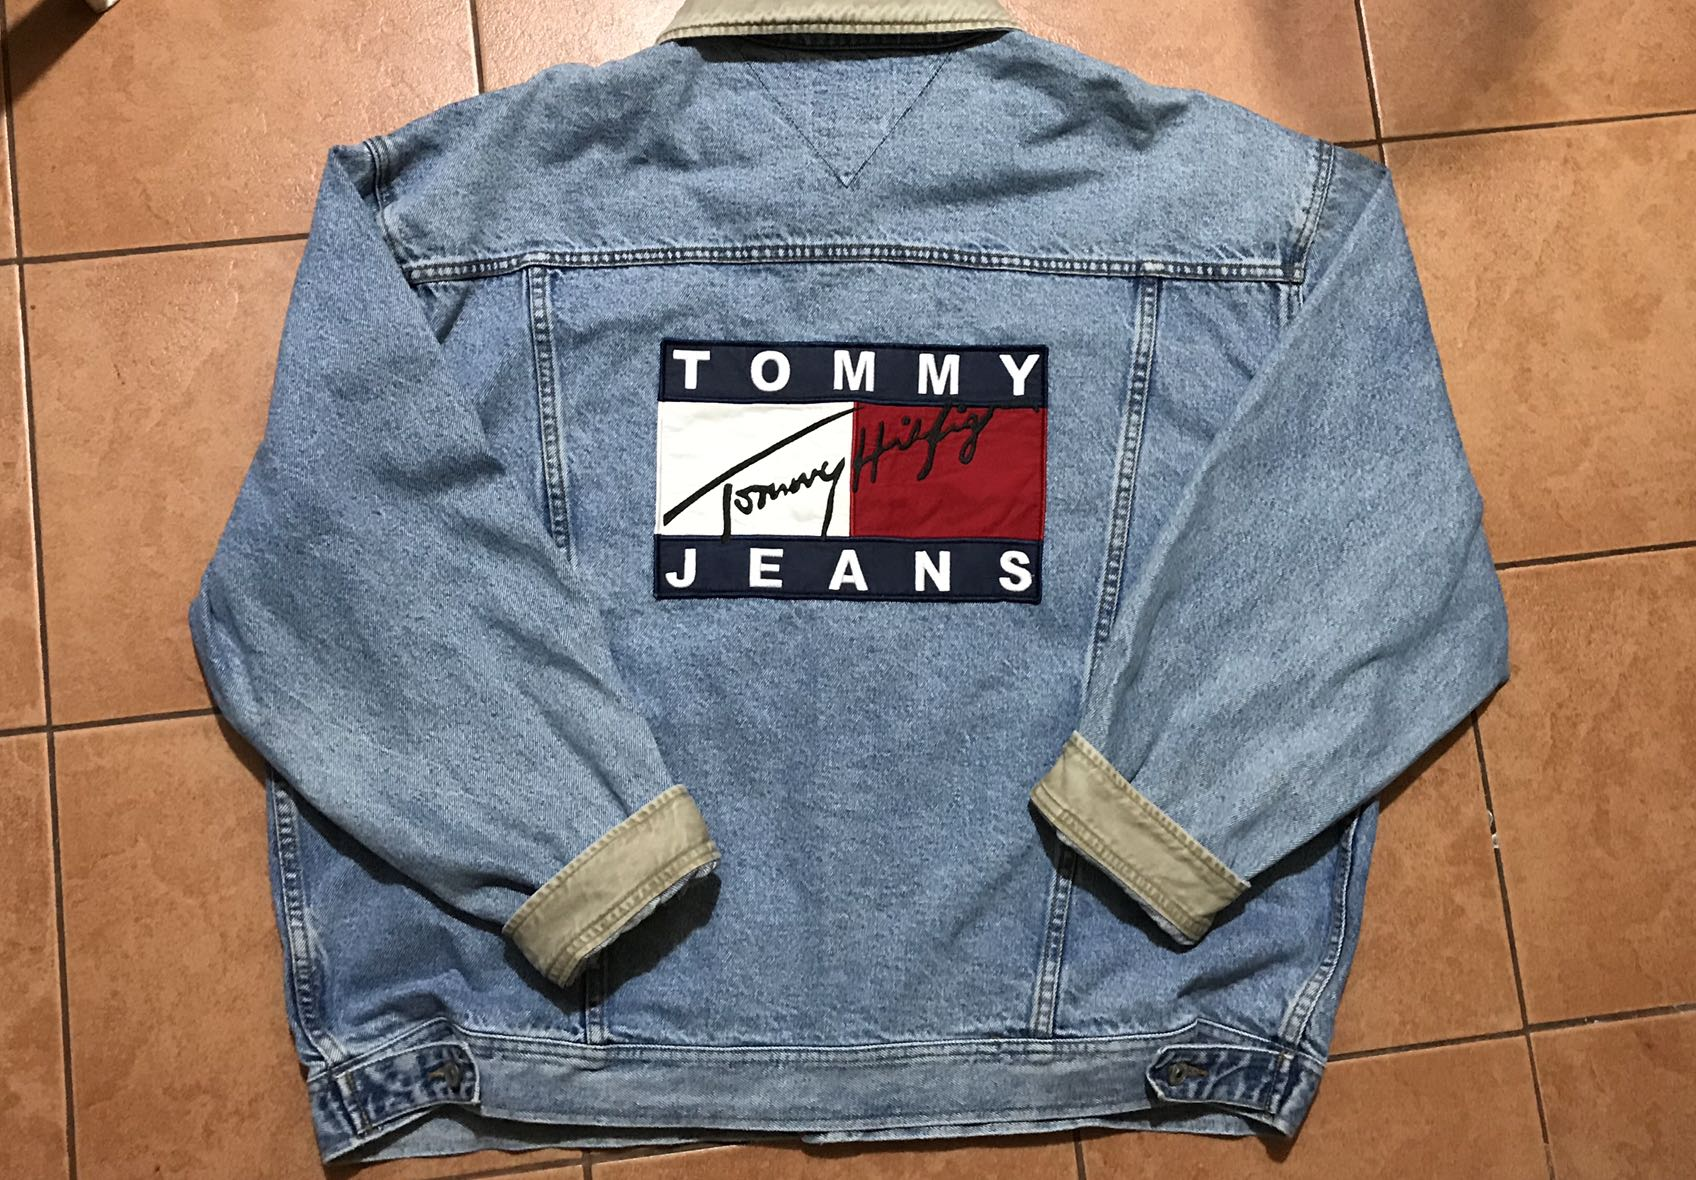 9d16434a Vintage Tommy Hilfiger Denim Jacket, Men's Fashion, Clothes, Outerwear on  Carousell